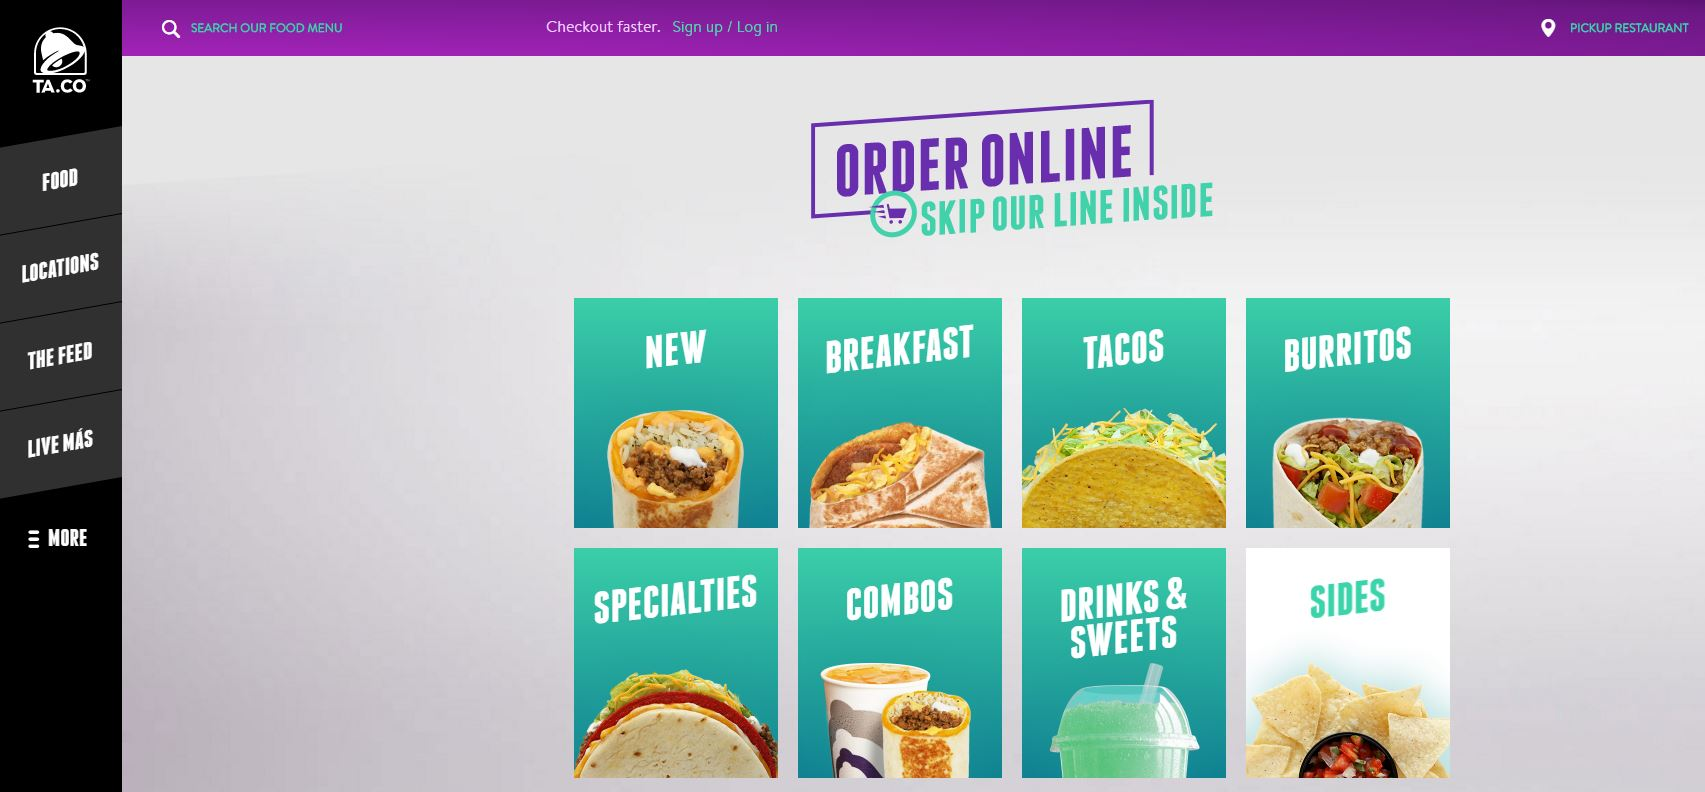 Taco Bell's restaurant website